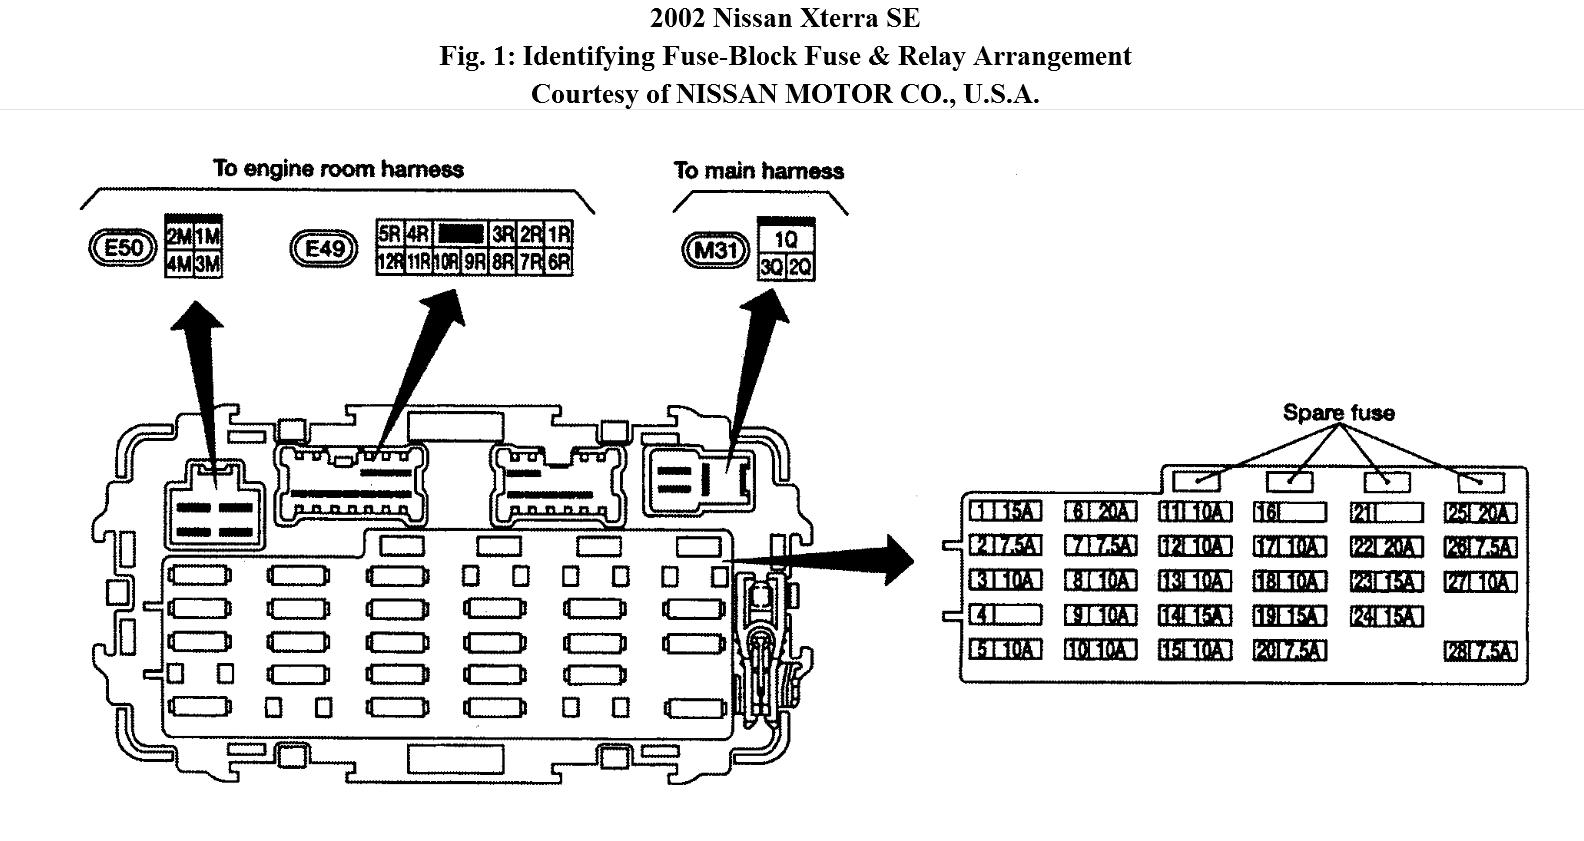 hight resolution of 2002 nissan xterra fuse diagram wiring diagram completed 2002 xterra fuse box location xterra 2002 fuse box